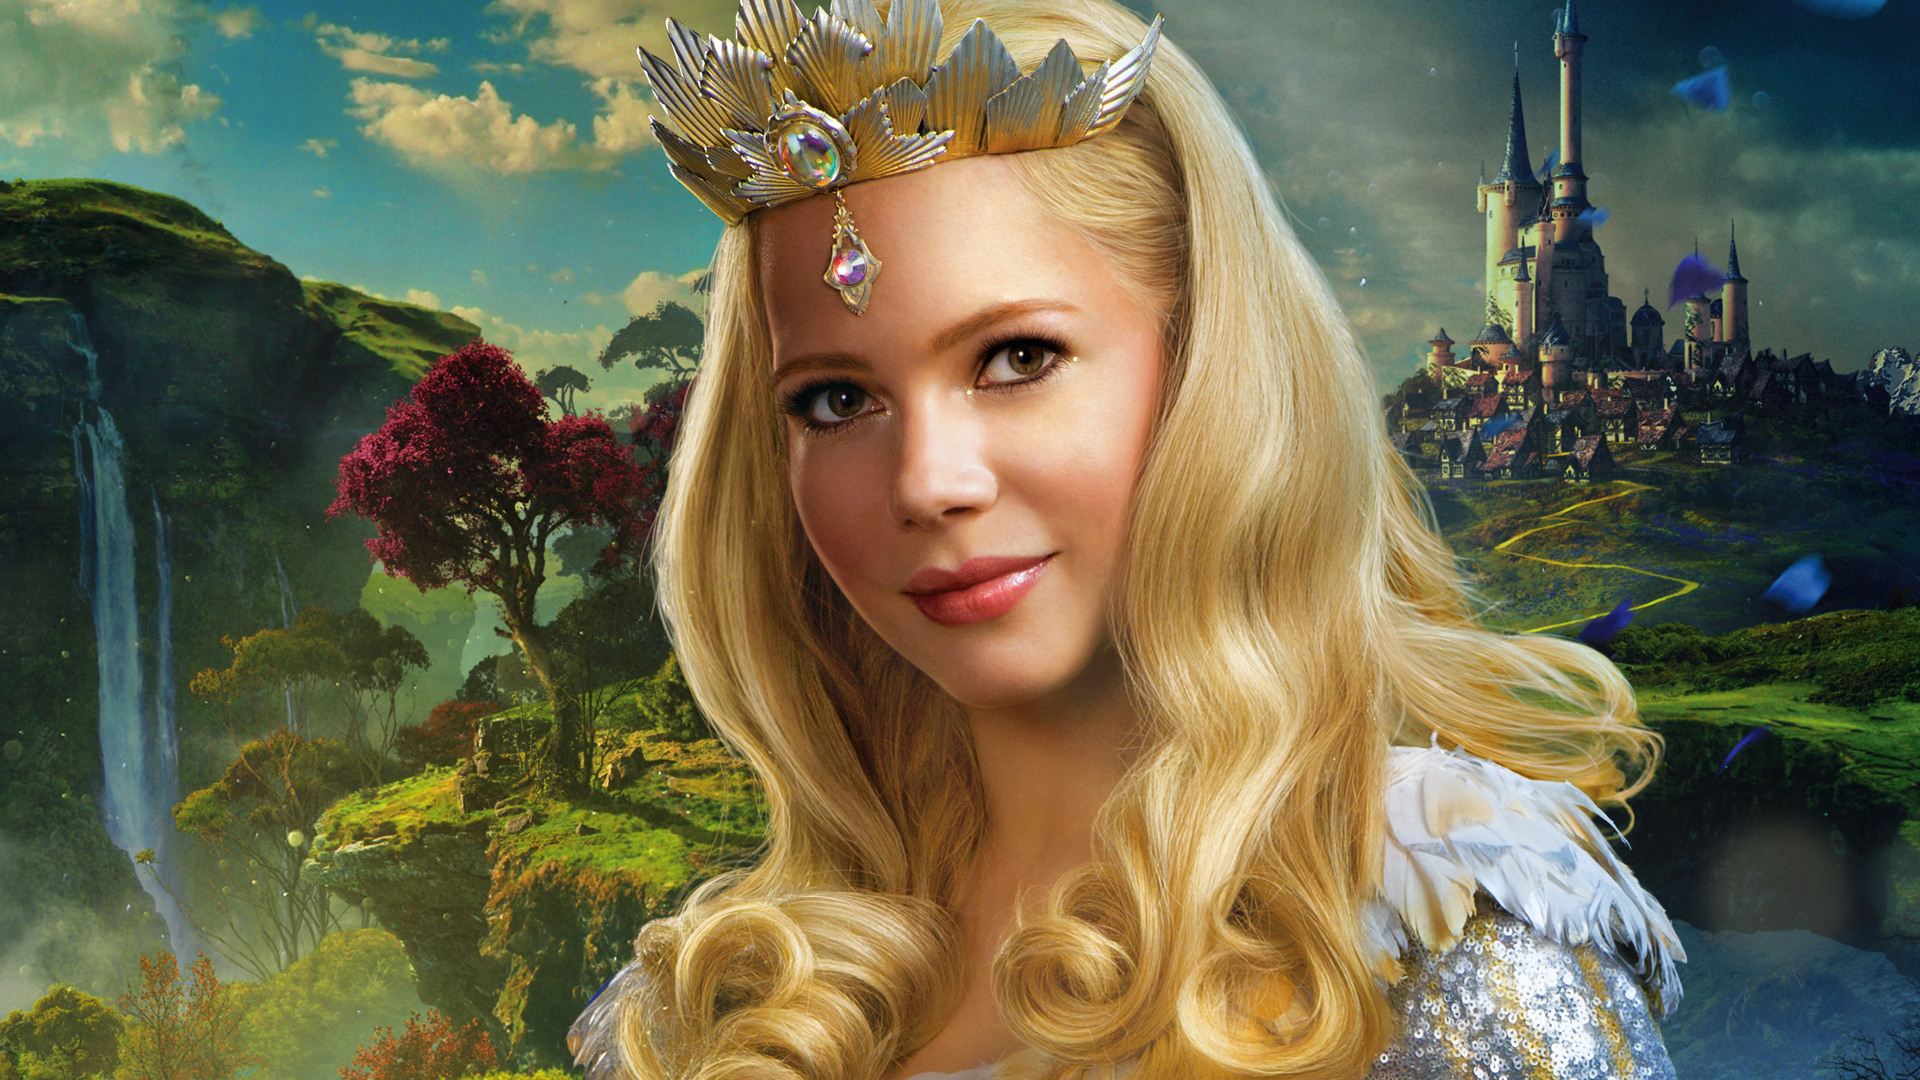 Wallpaper Michelle Williams, Actress, Oz the Great and Powerful, 2013 movie